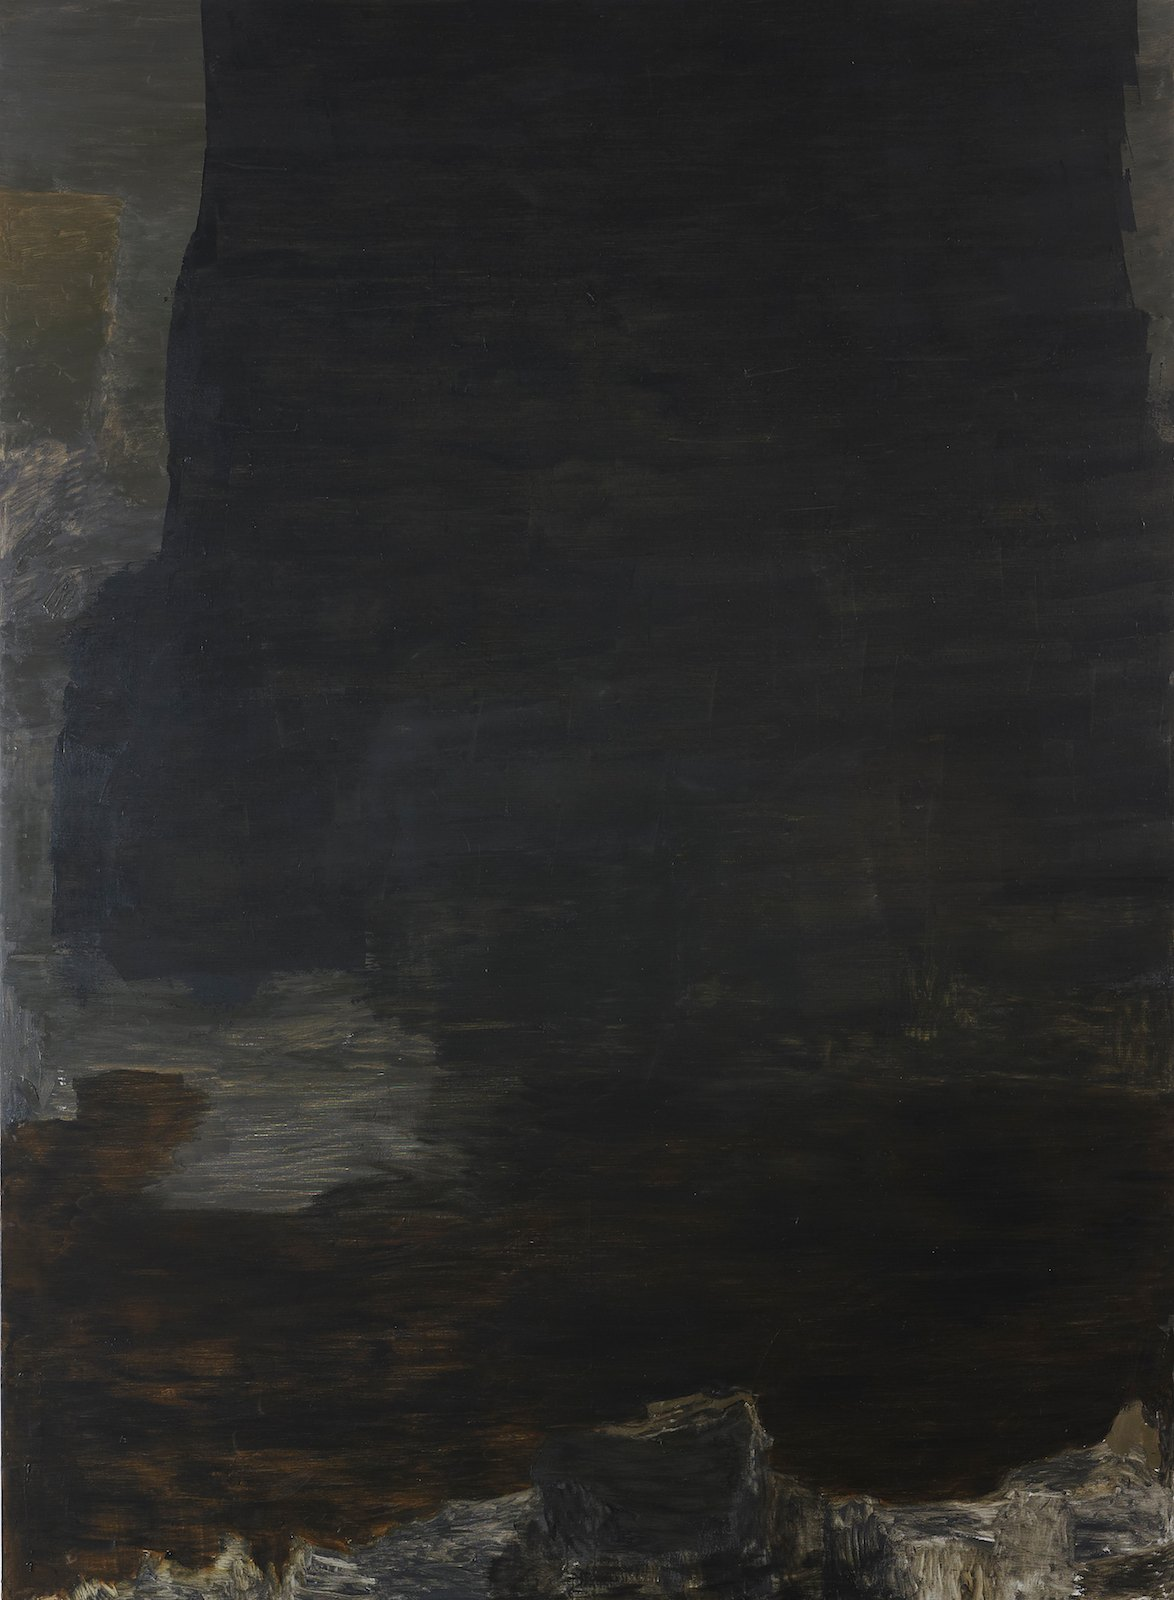 Untitled, 2011, oil on canvas, 278 x 203 cm